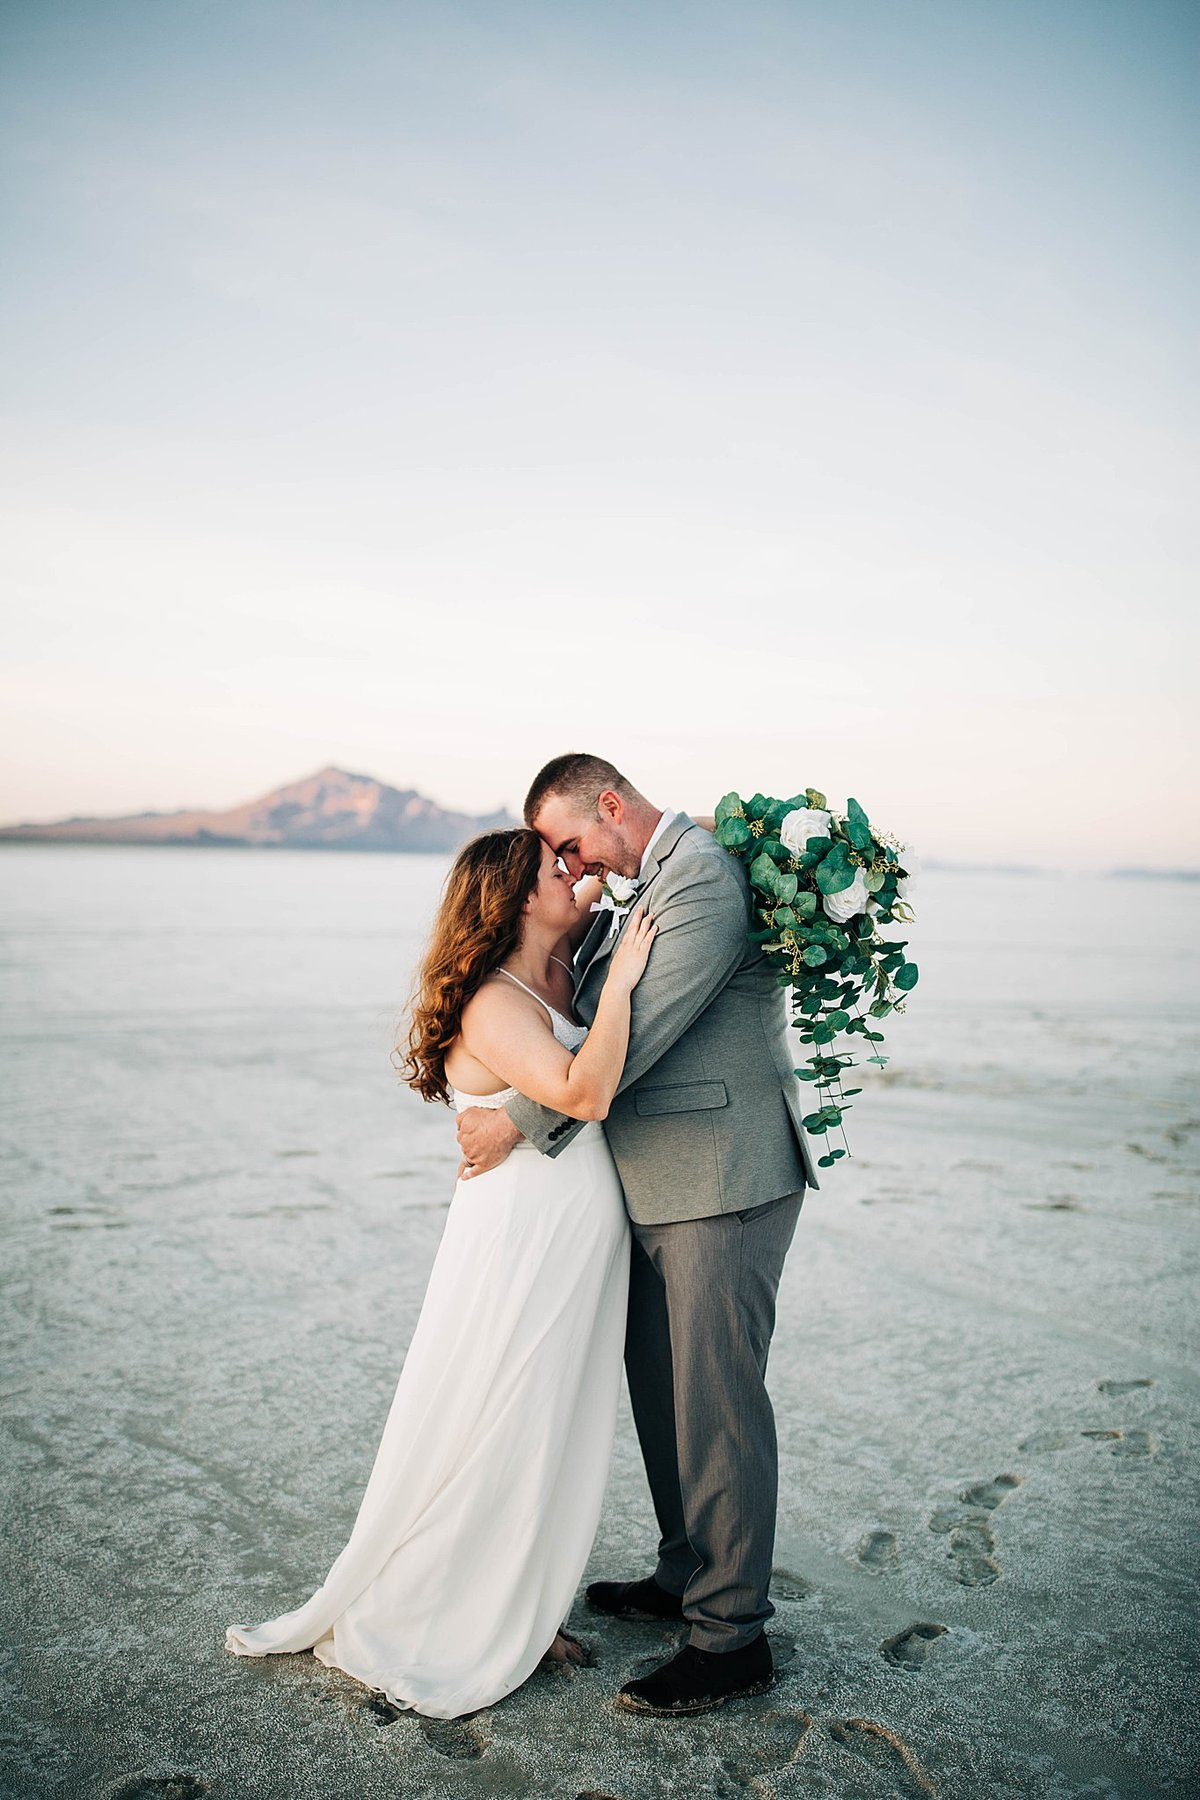 bonneville-salt-flats-engagement-utah-wedding-photographer-rebecca-renner-photography_0002